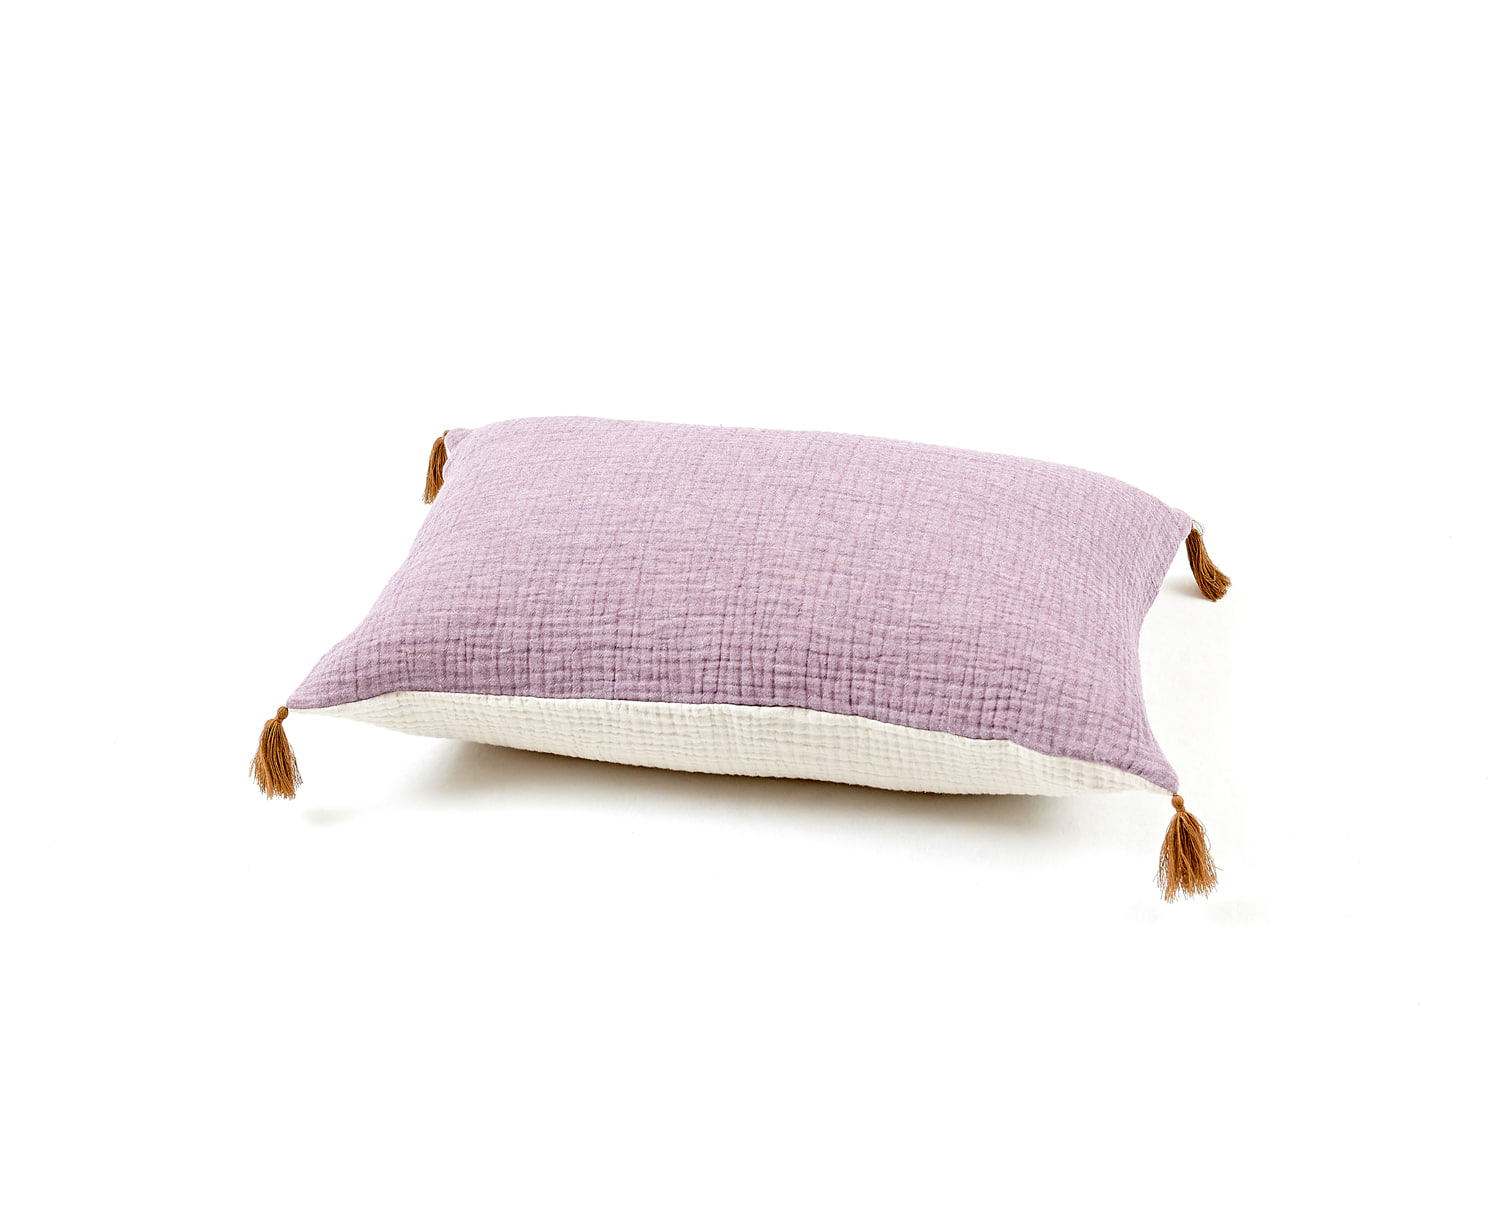 BICOLOR GAUZE CUSHION PURPLE / IVORY